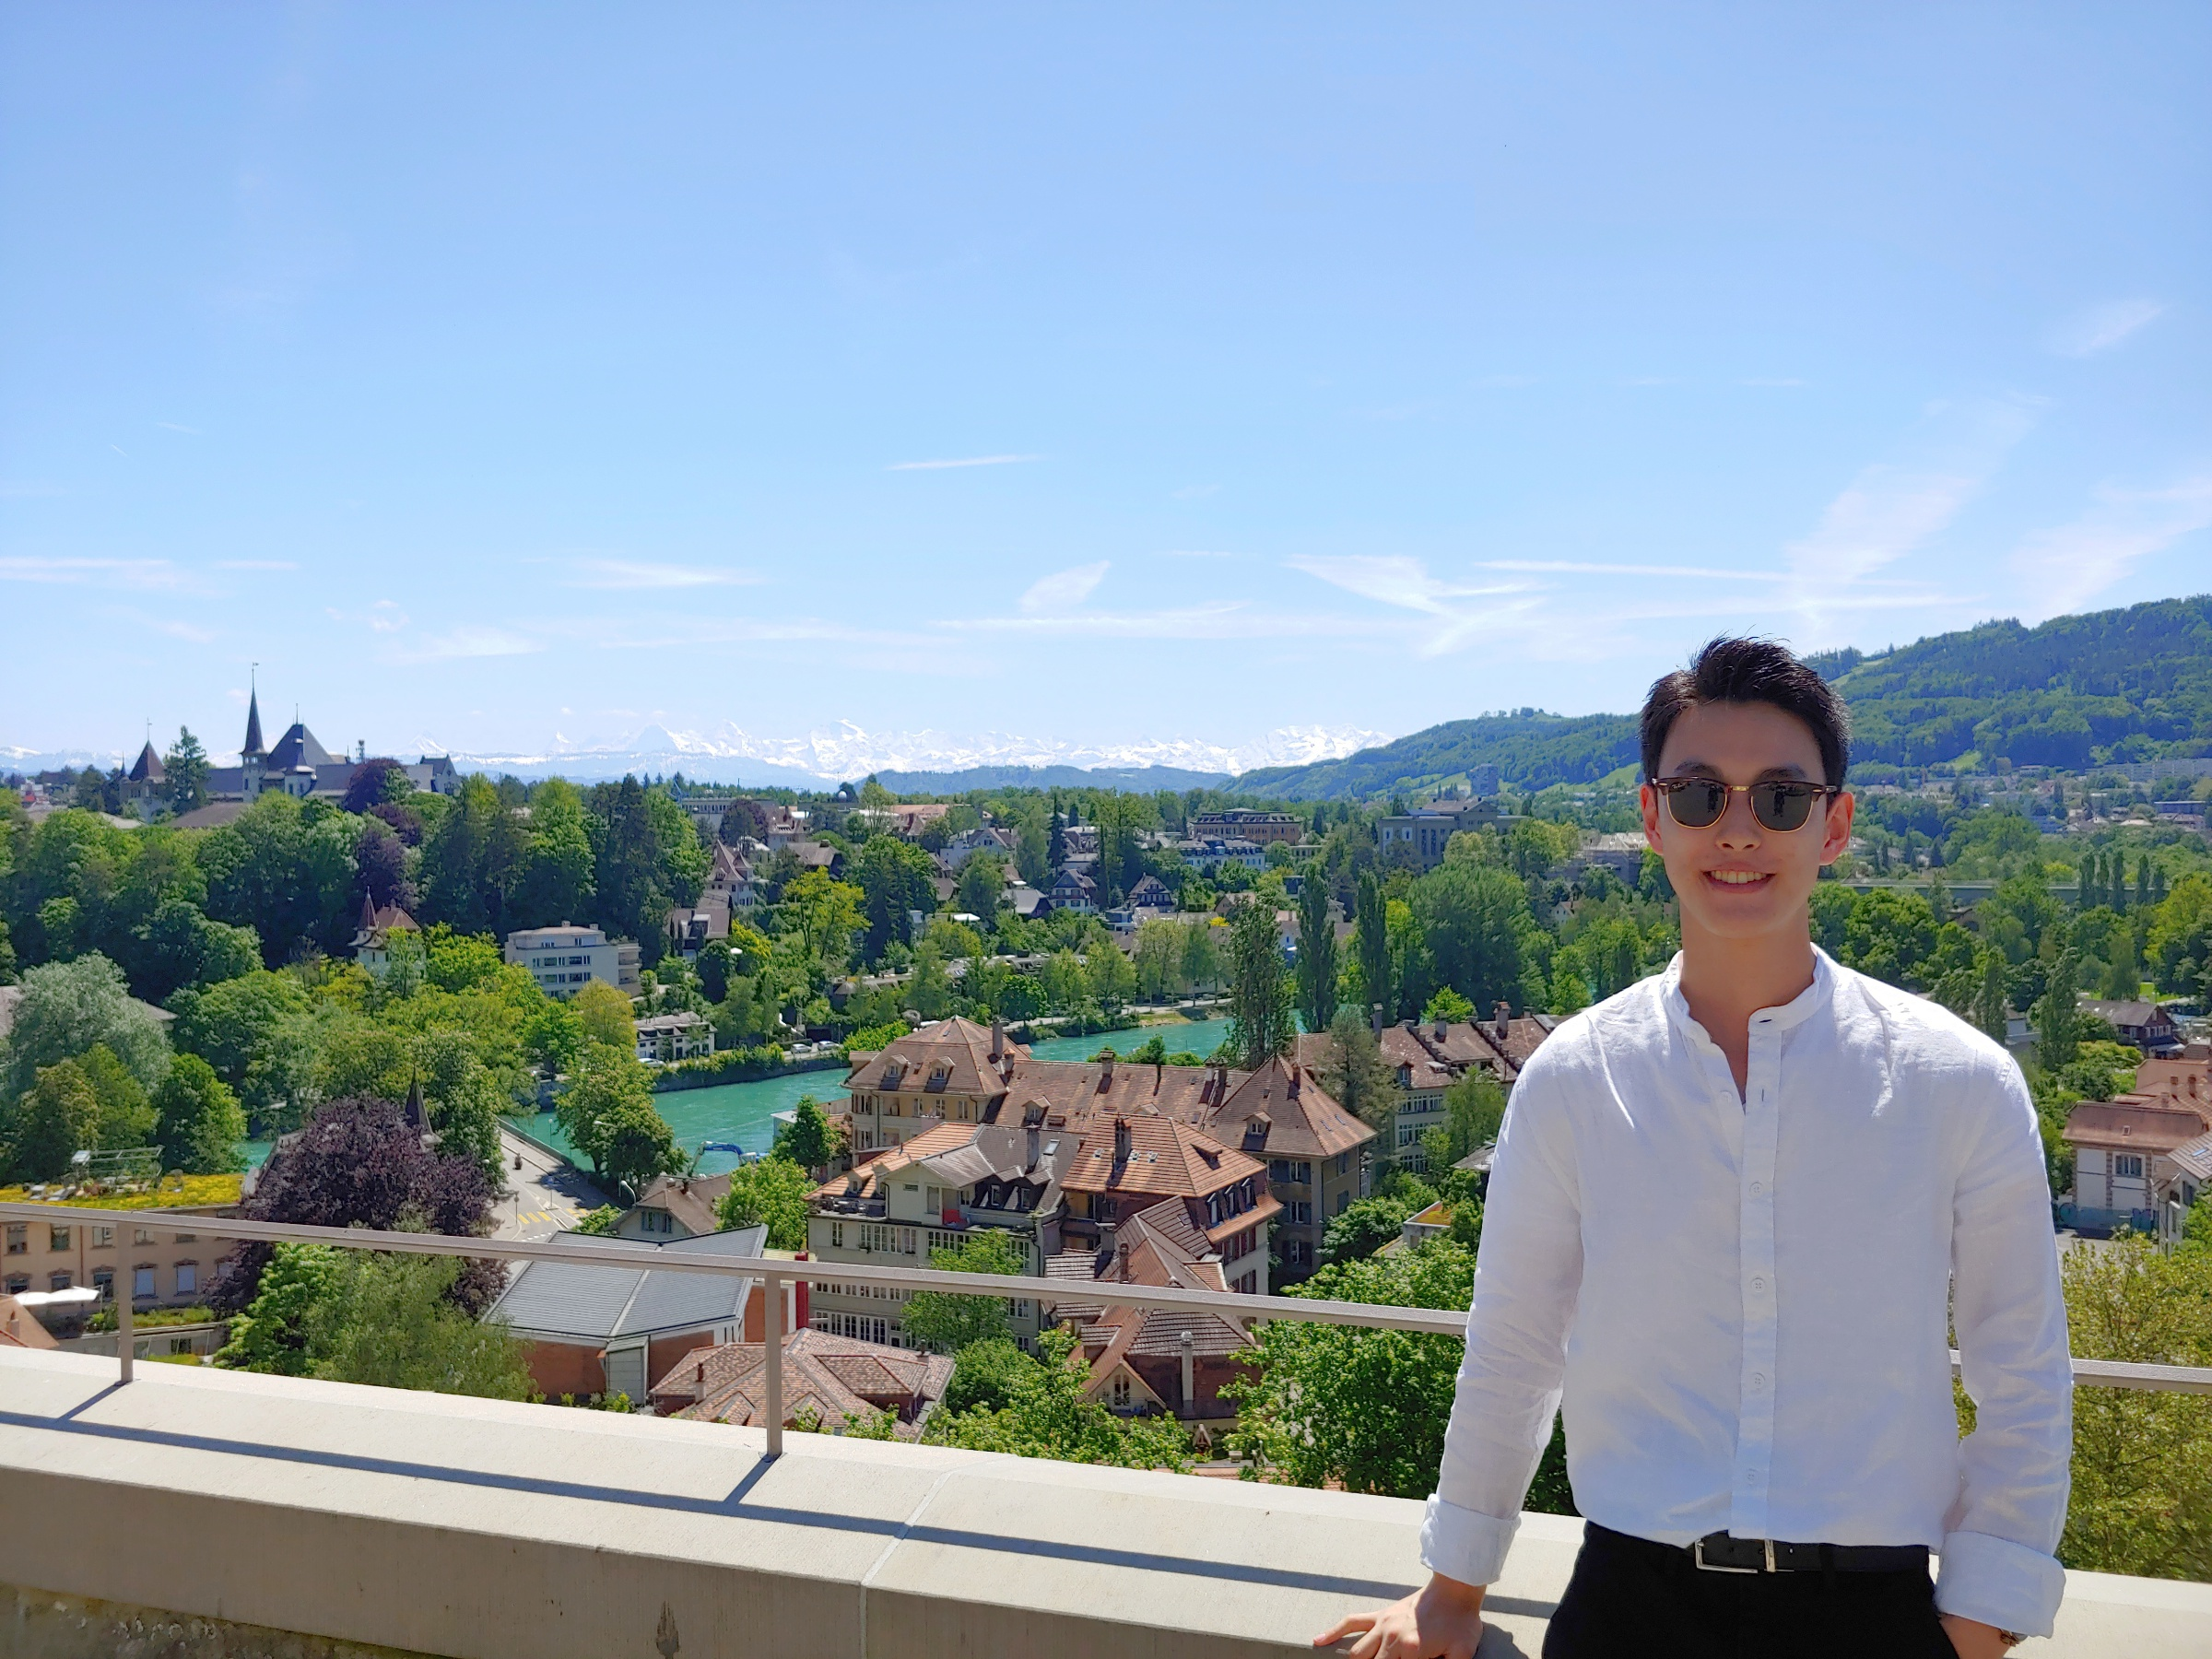 John standing on a balcony overlooking the city of Bern